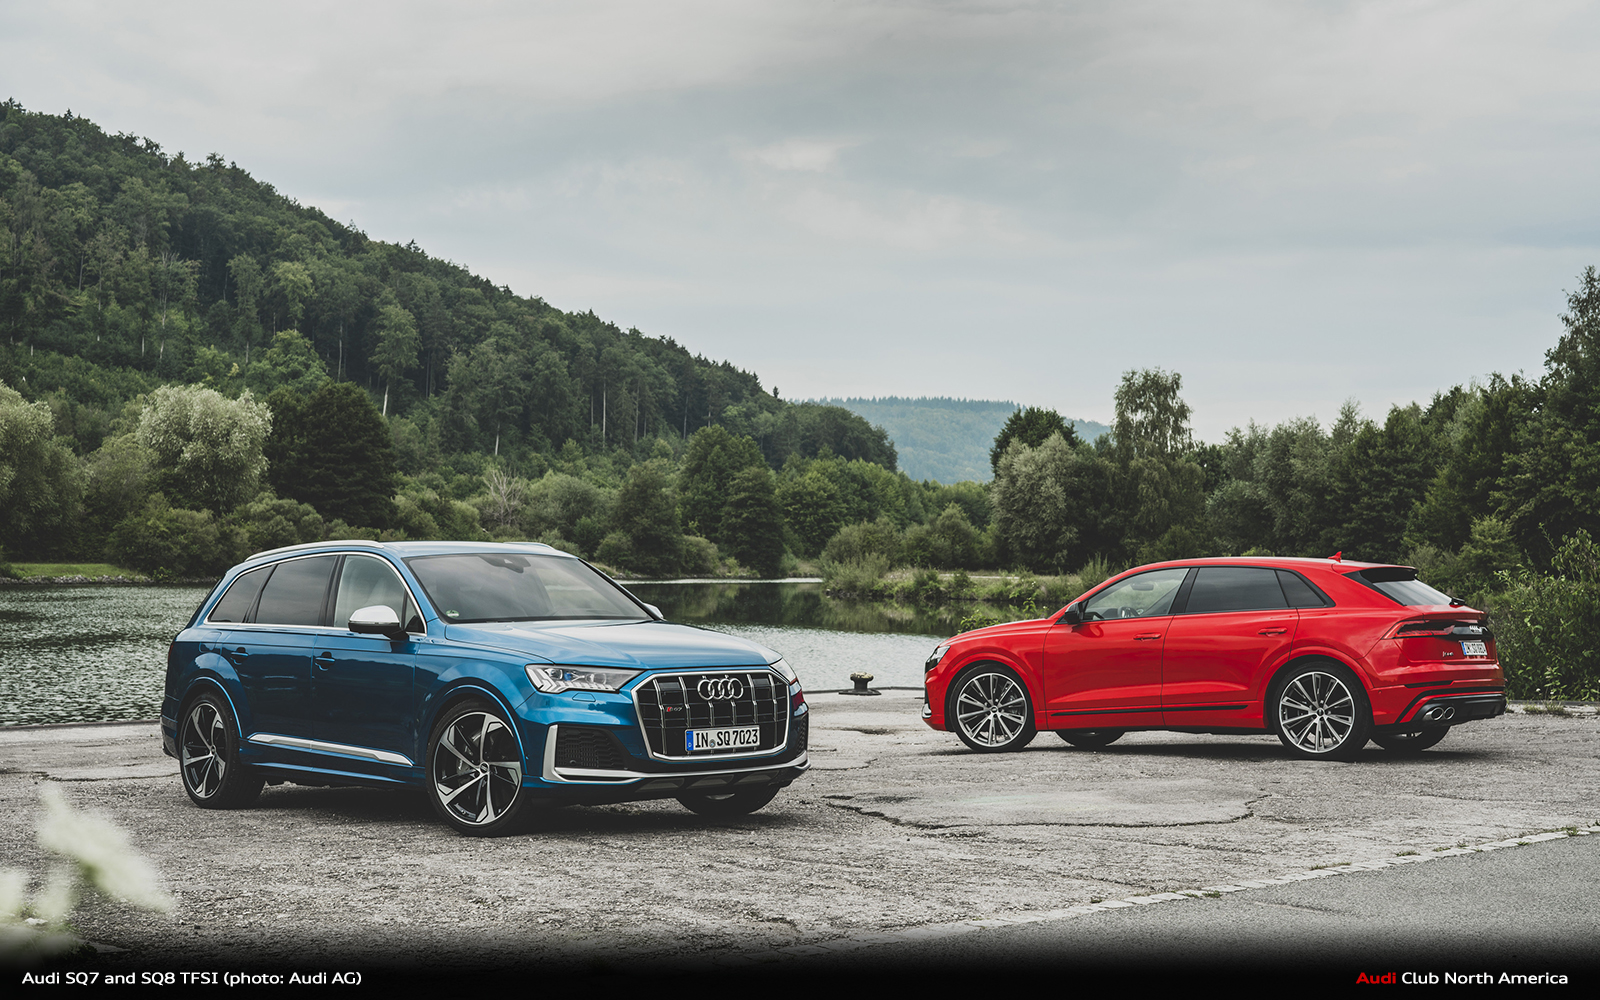 Sporty Character with a Superior Performance: The Audi SQ7 and SQ8 with V8 TFSI Gasoline Engine